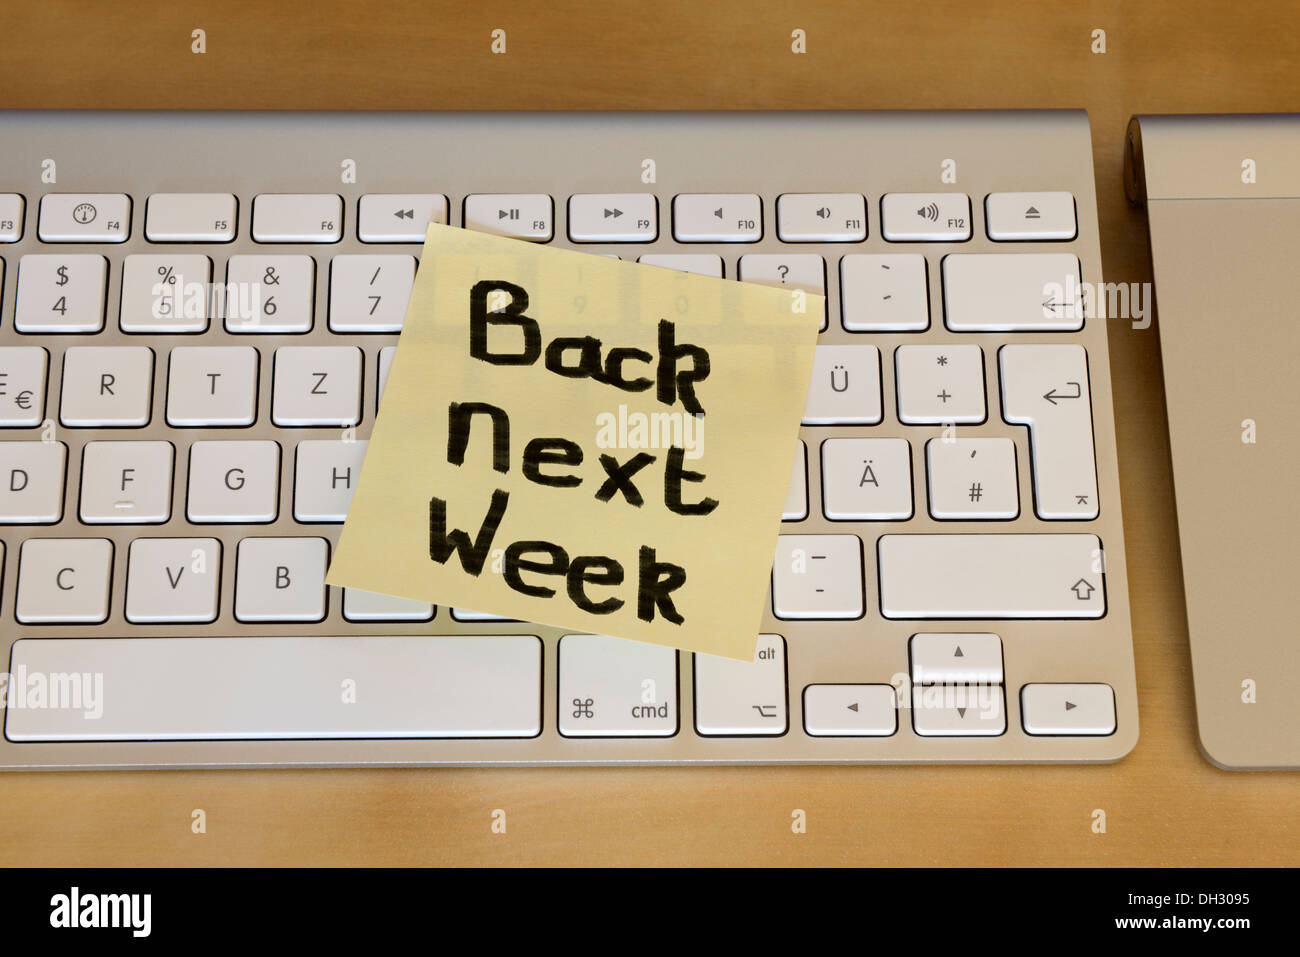 'Back next week' post it note on computer keyboard - Stock Image